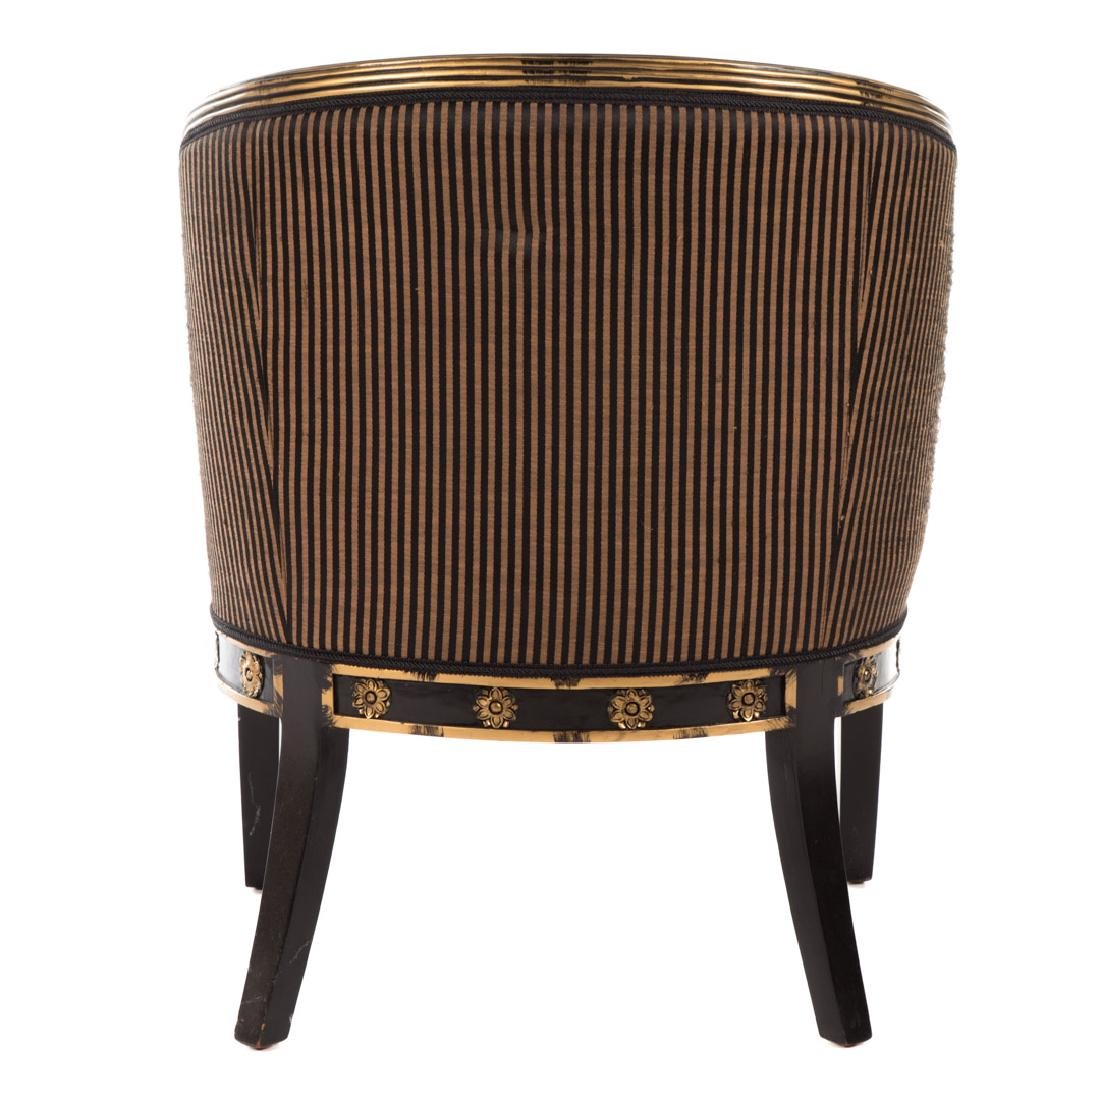 Empire style partial gilt upholstered bergere - 3